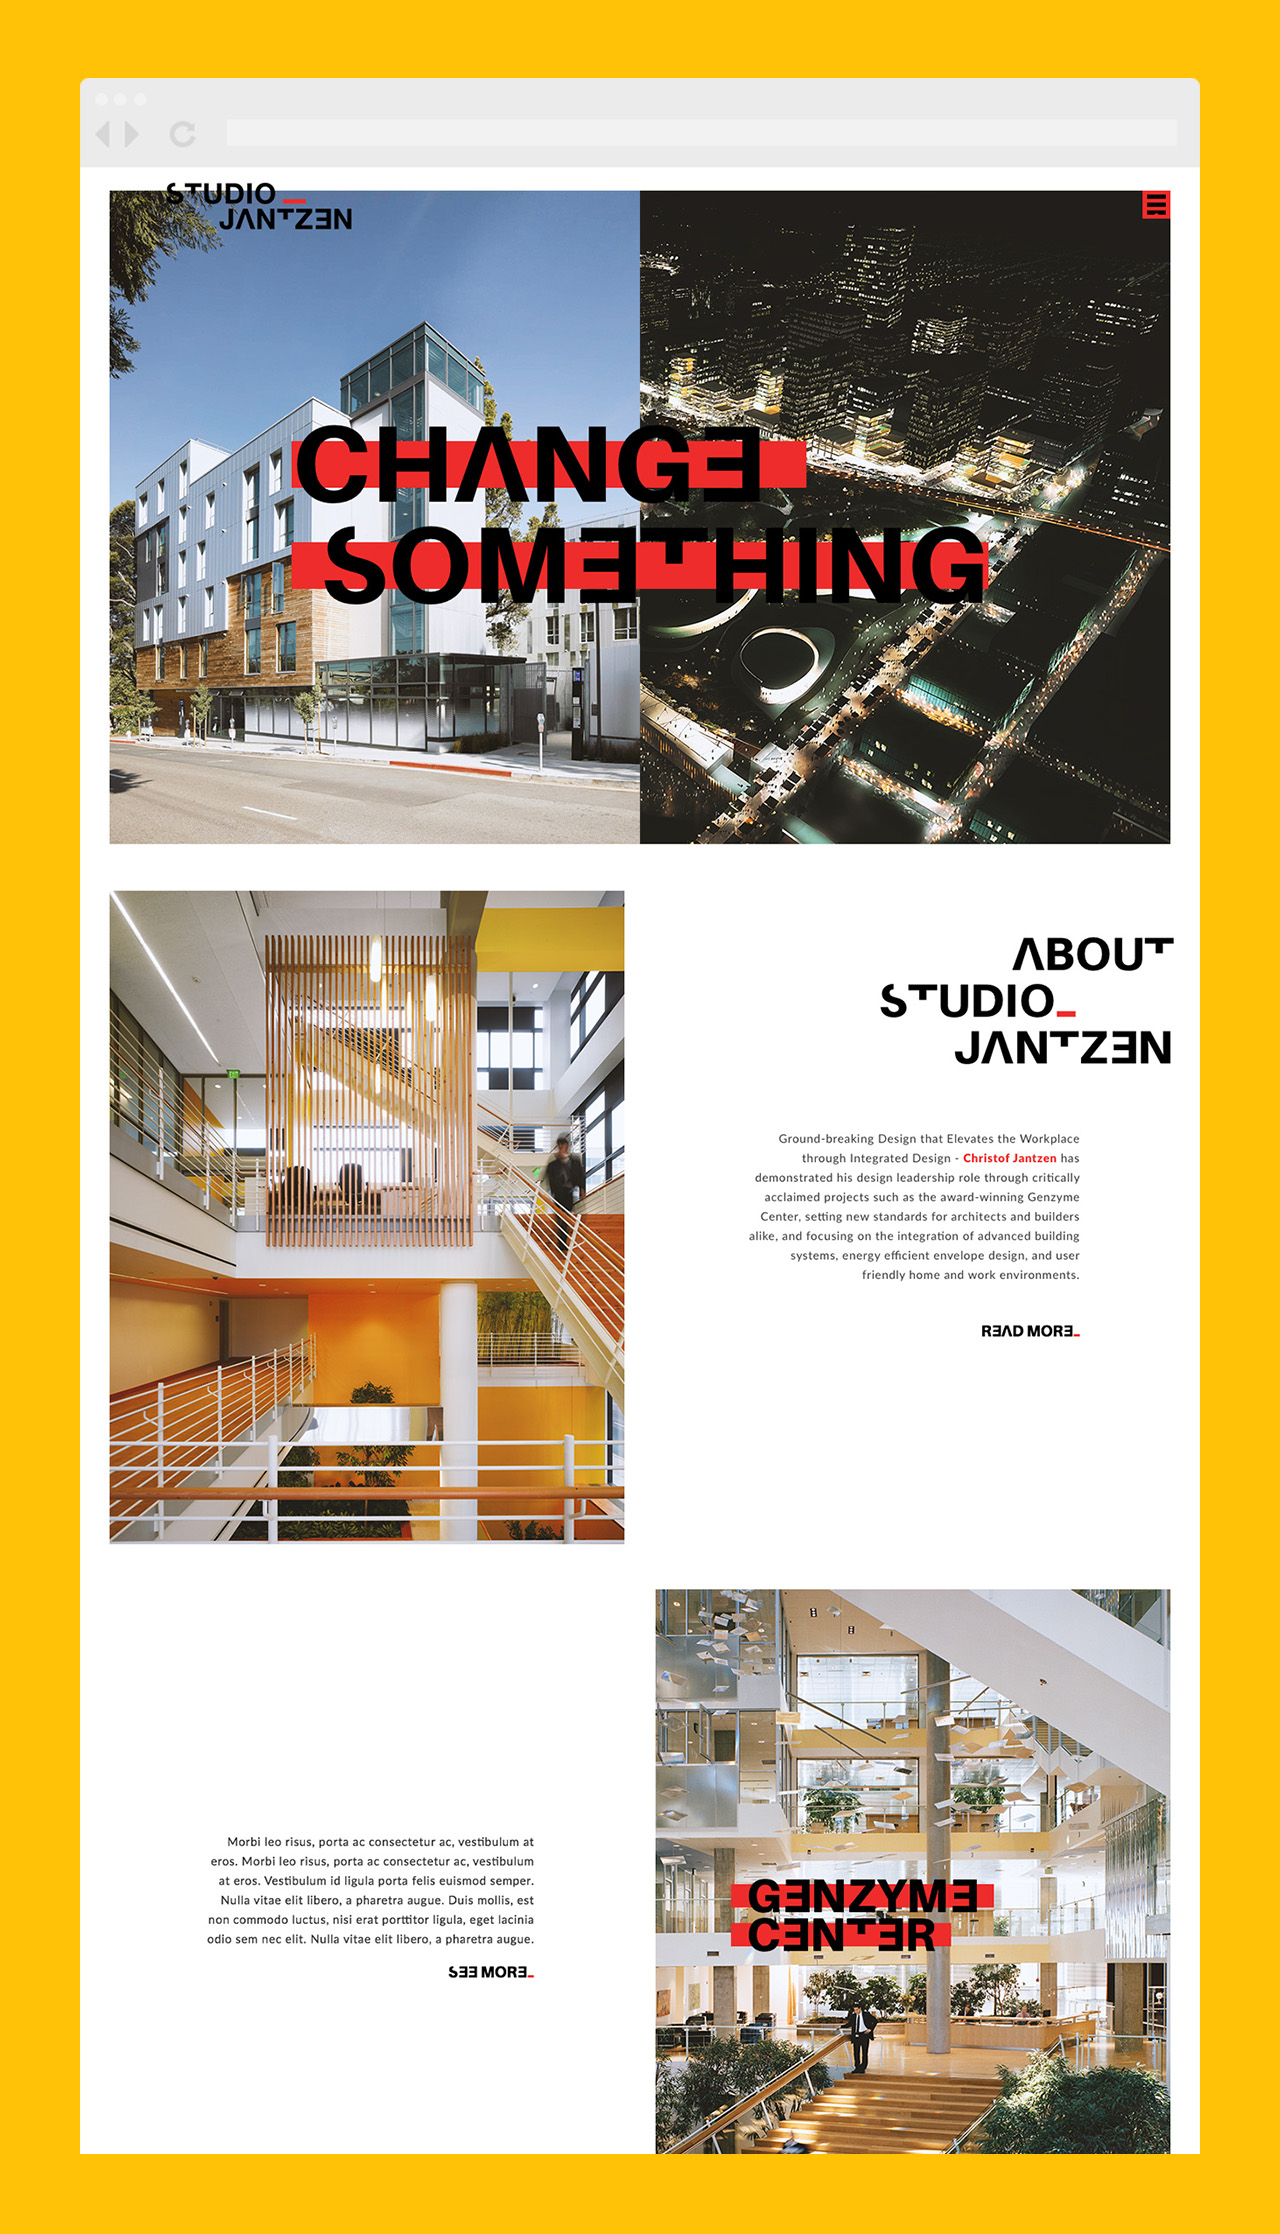 studio jantzen architecture new media agency california